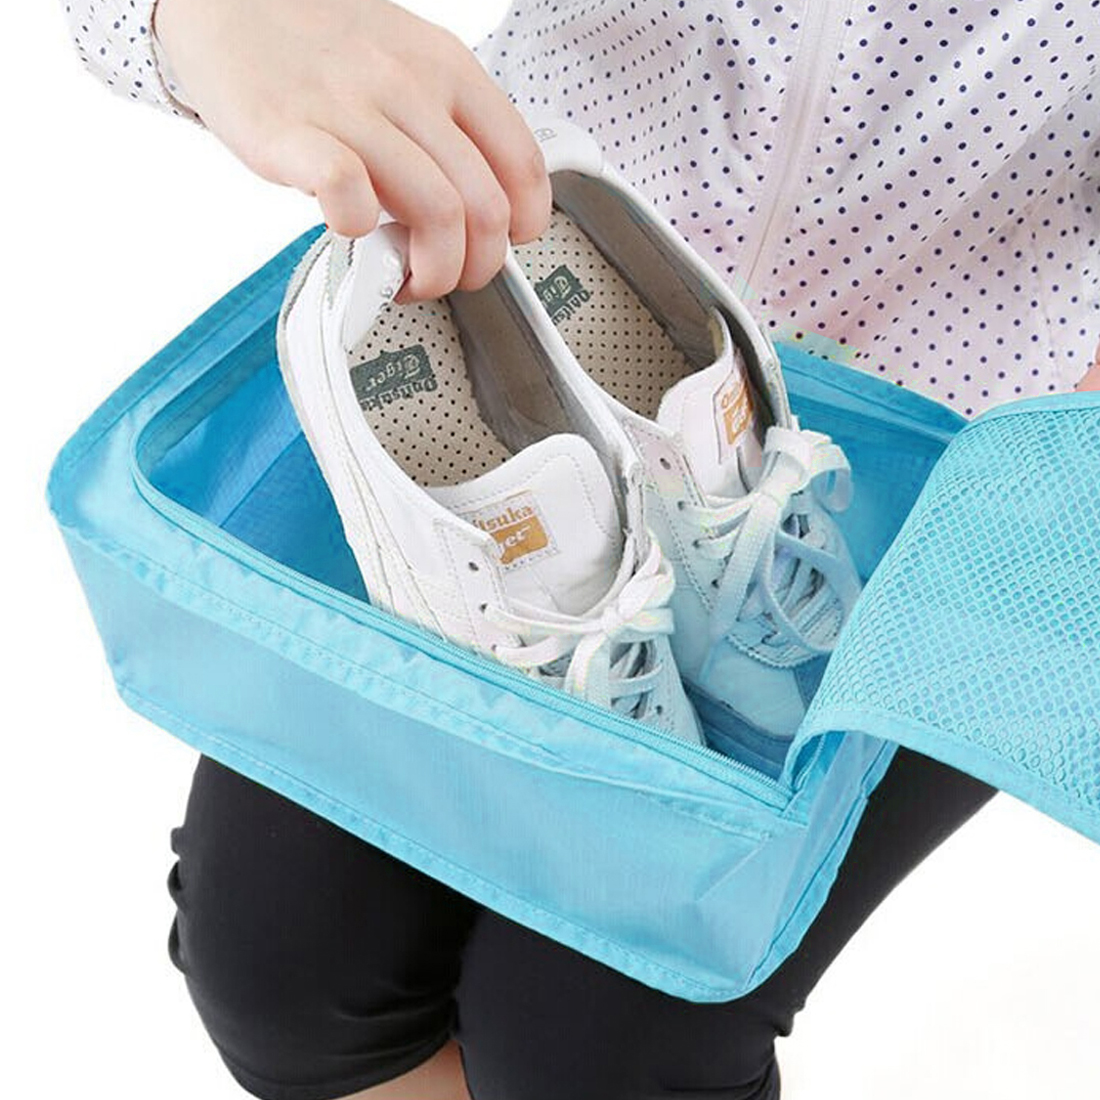 Unique Bargains Water Resistant Shoes Storage Folding Pouch Bag Case Organizer Keeper - image 4 de 6